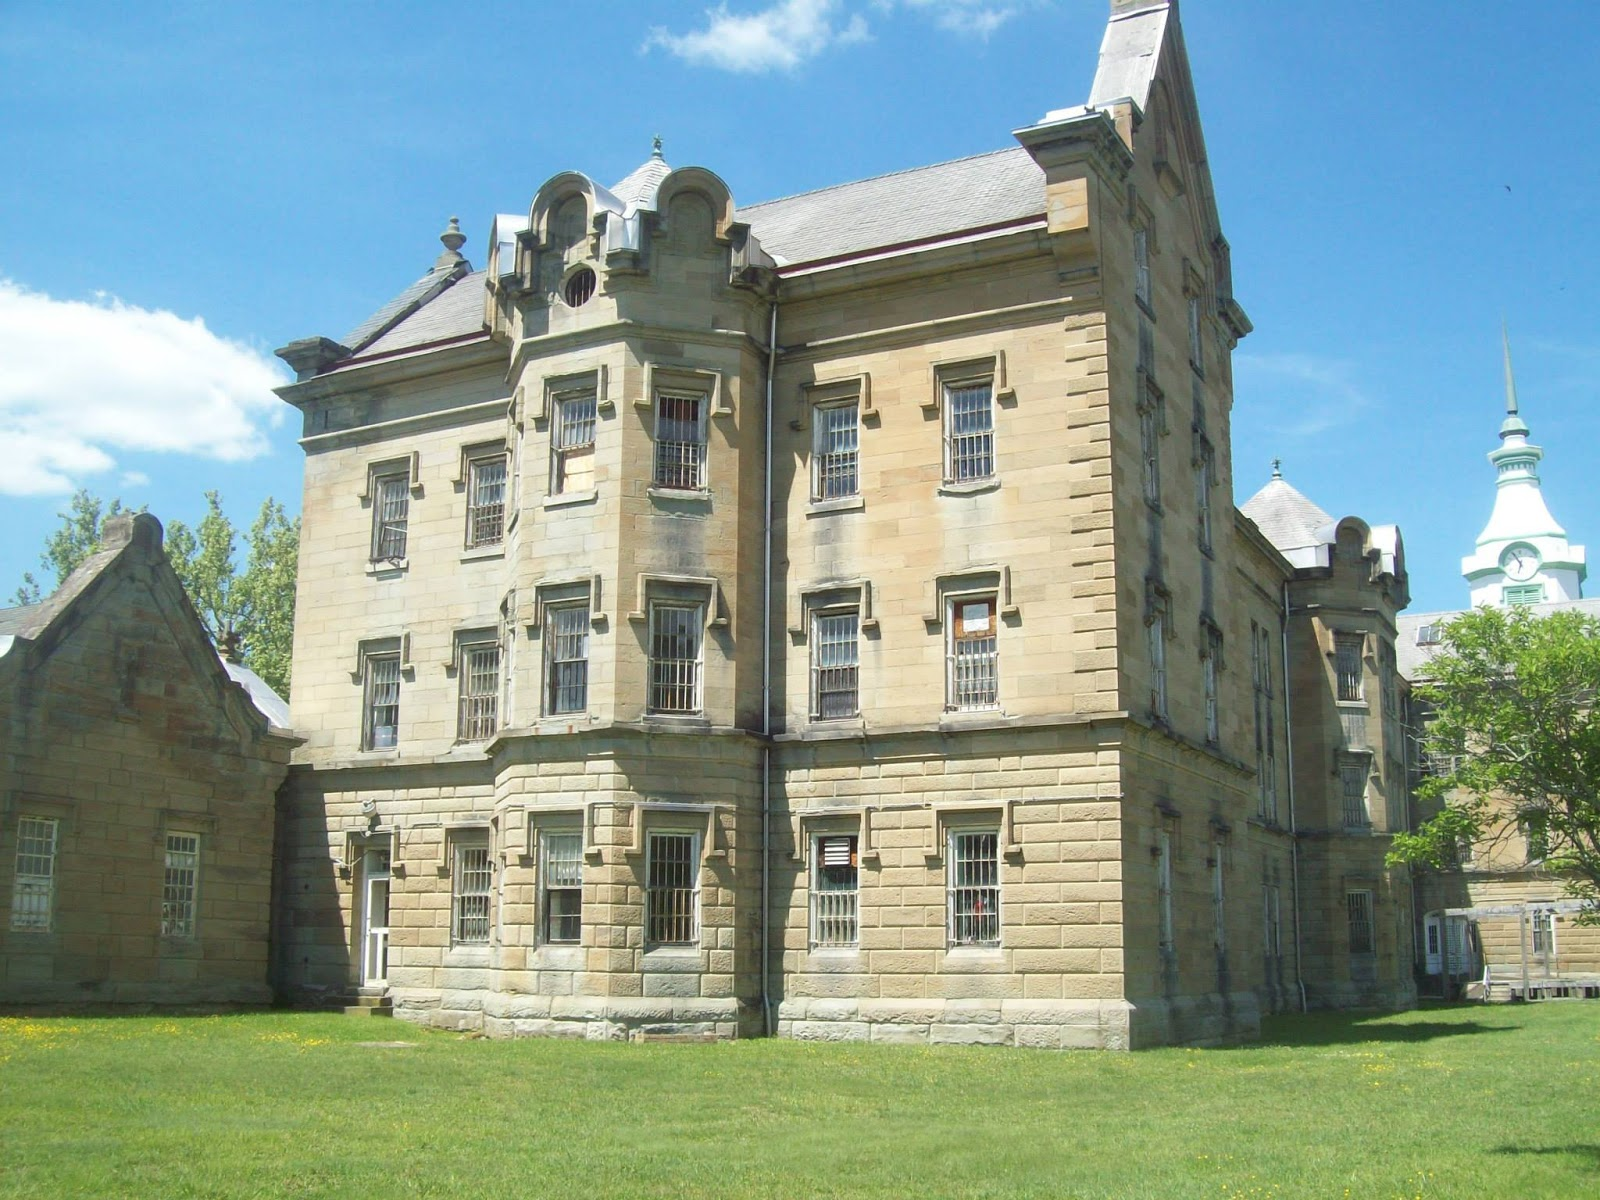 the trans allegheny lunatic asylum subsequently the weston state hospital was a kirkbride 3 psychiatric hospital that operated from 1864 until 1994 by